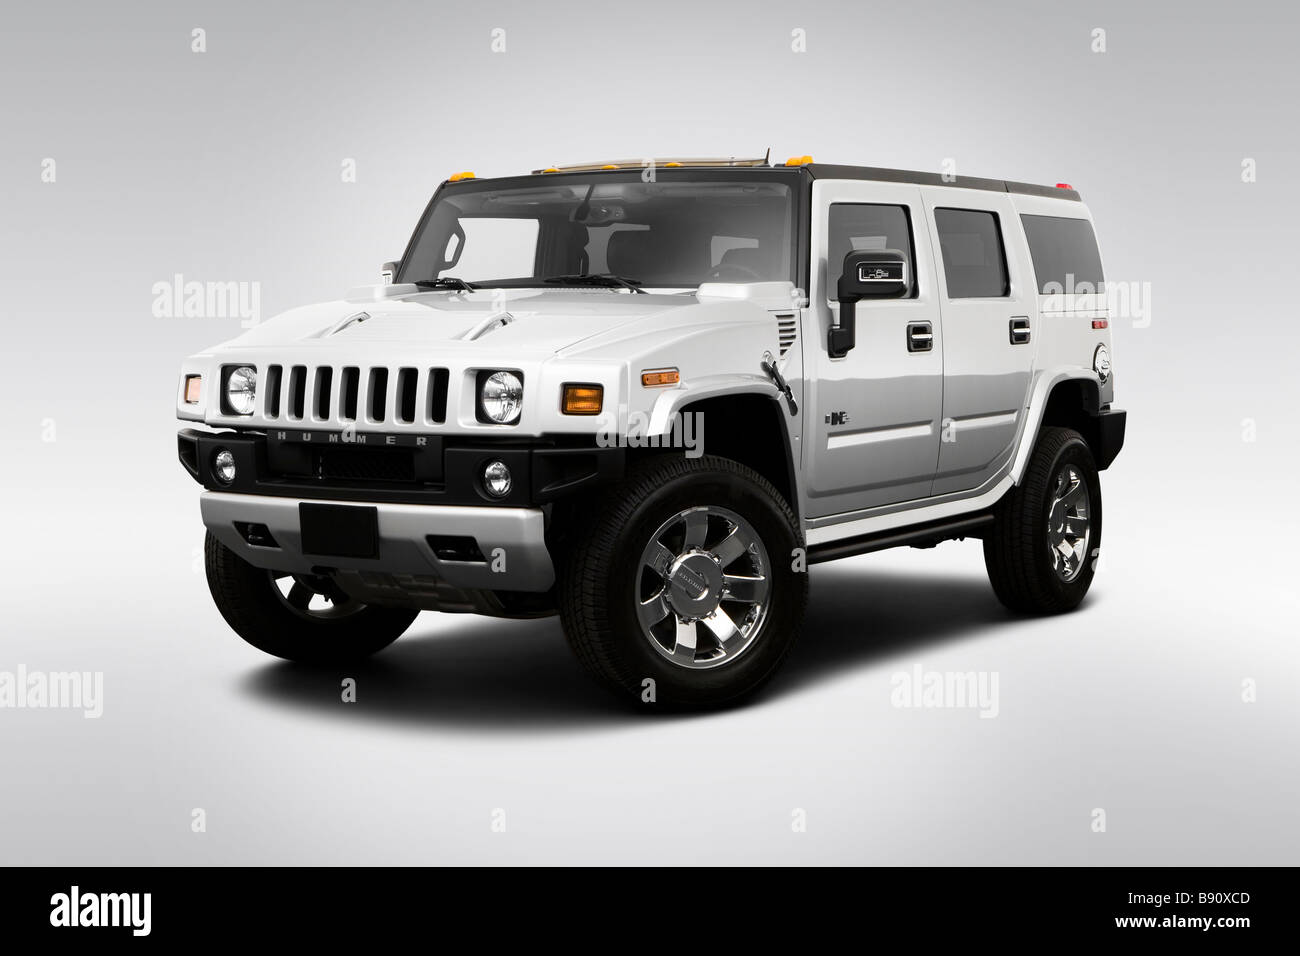 2009 Hummer H2 Limited Edition in Silver - Front angle view - Stock Image